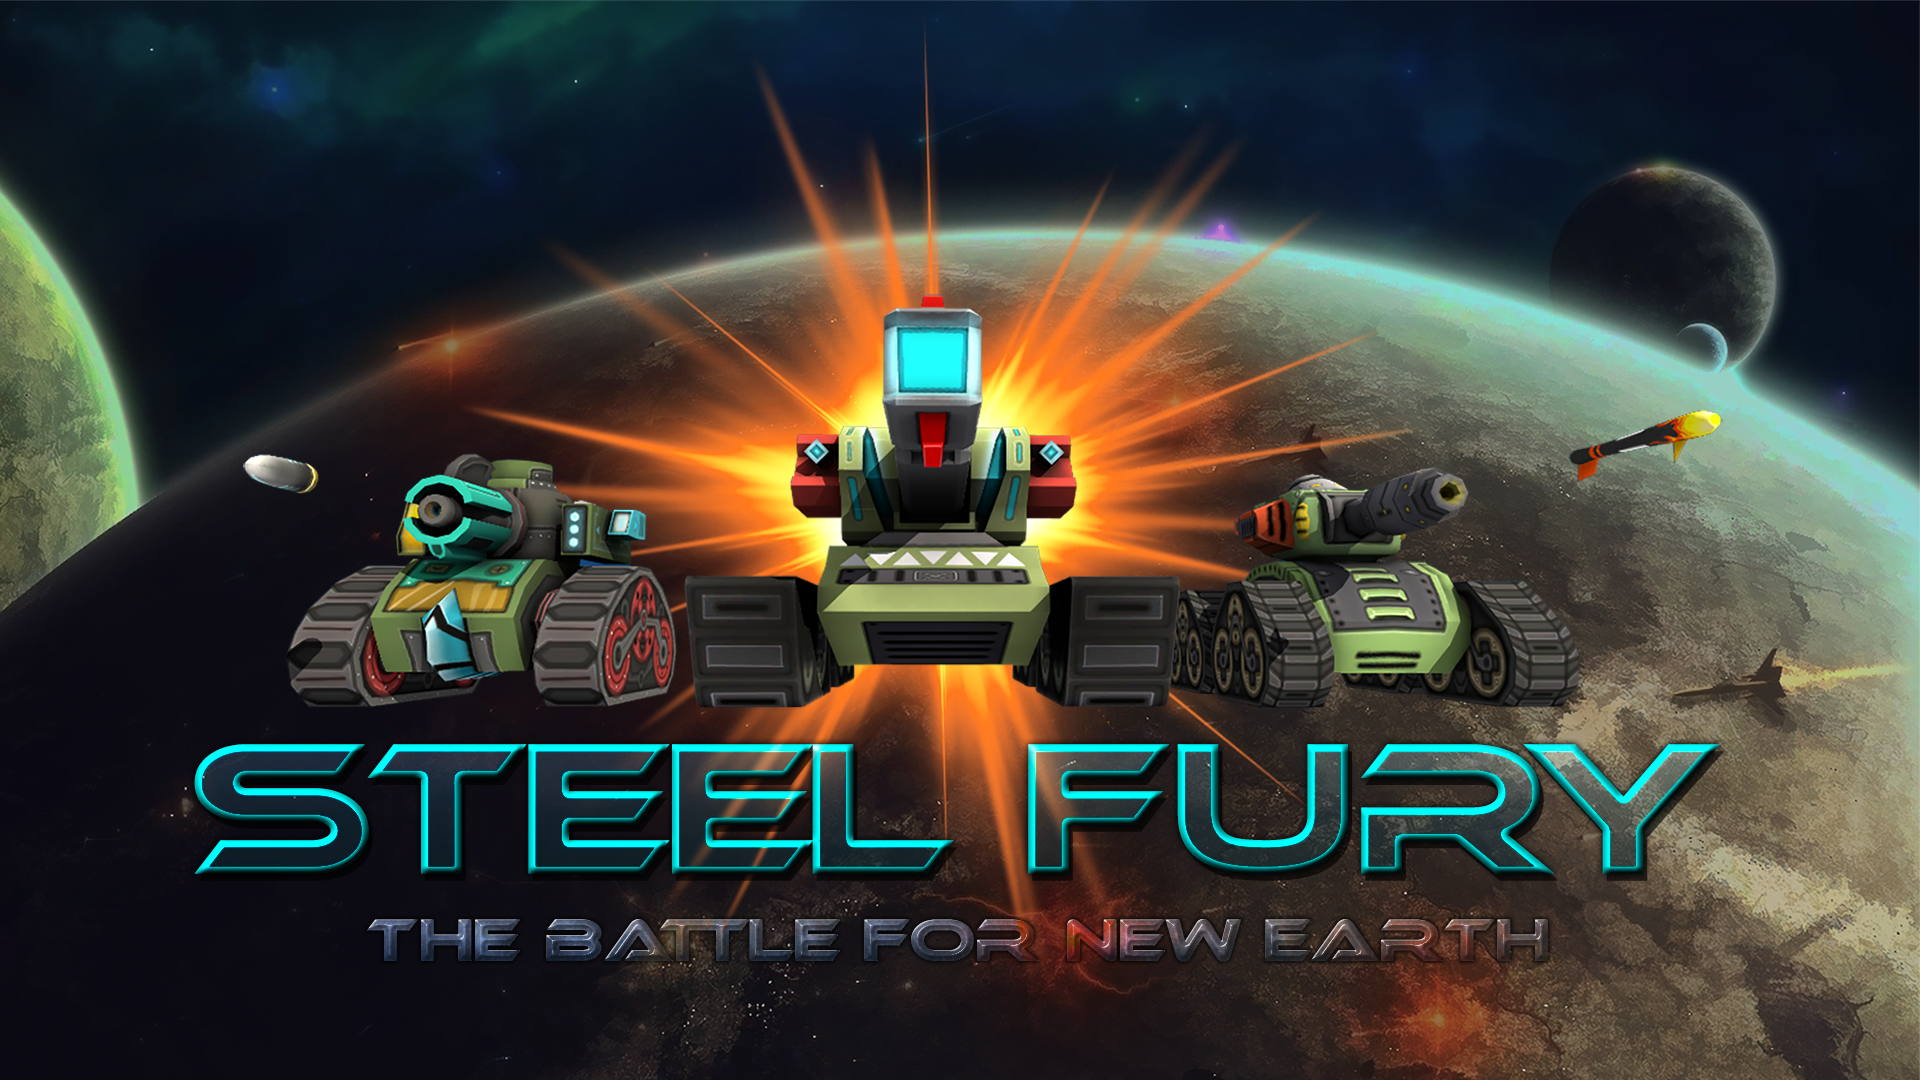 Steel Fury. The Battle for new Earth